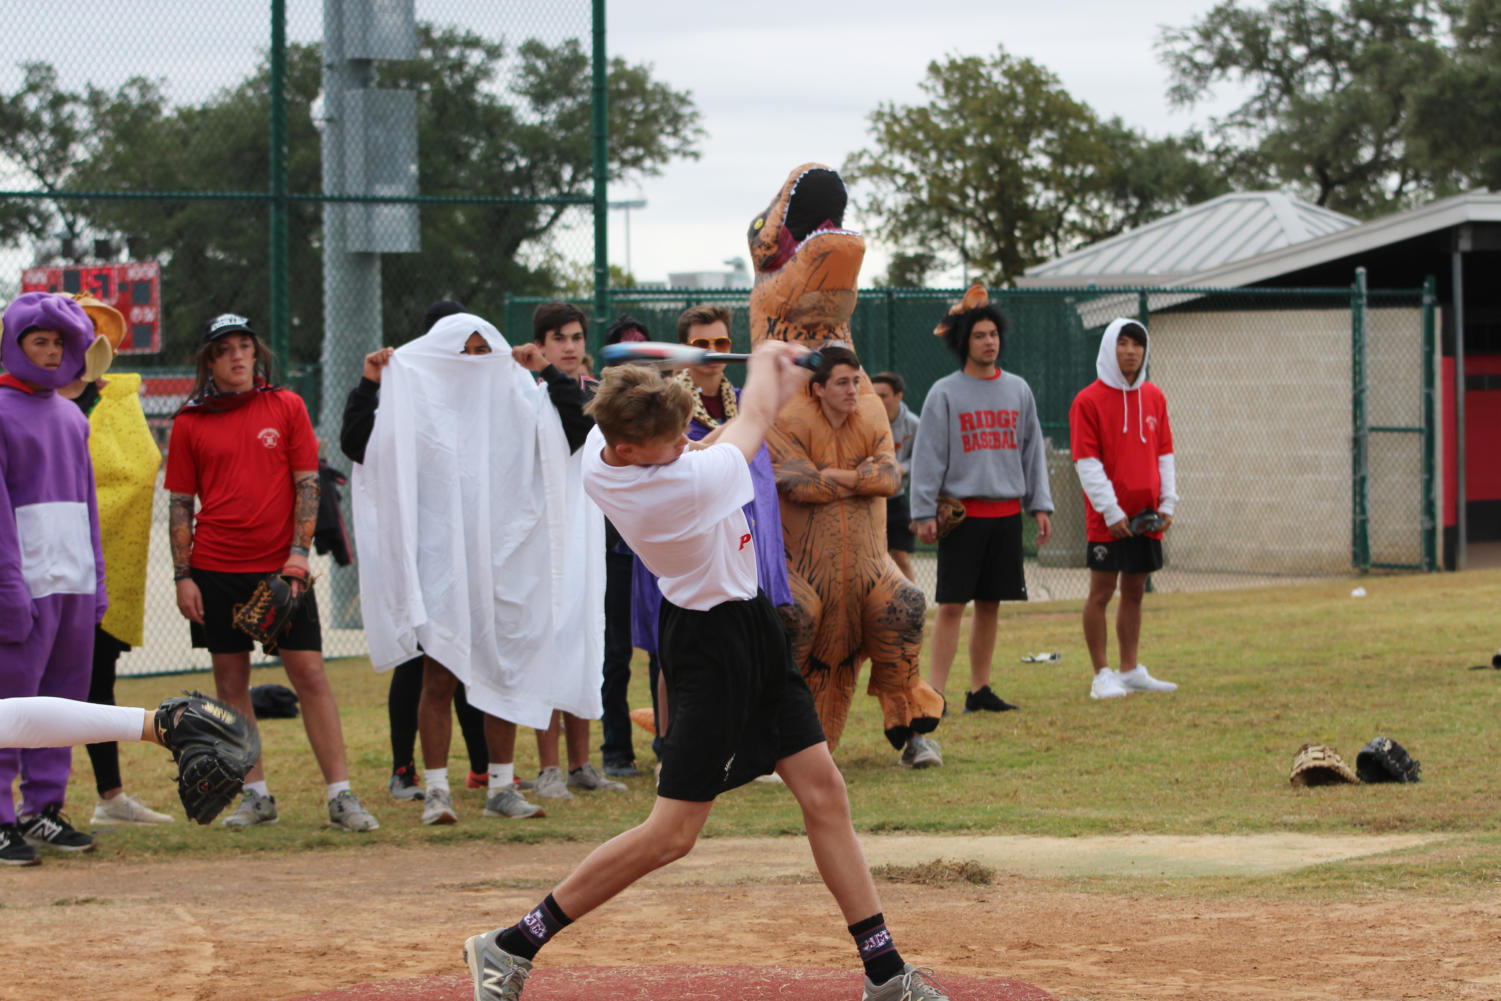 Second period baseball scrimmages in costume on Halloween.